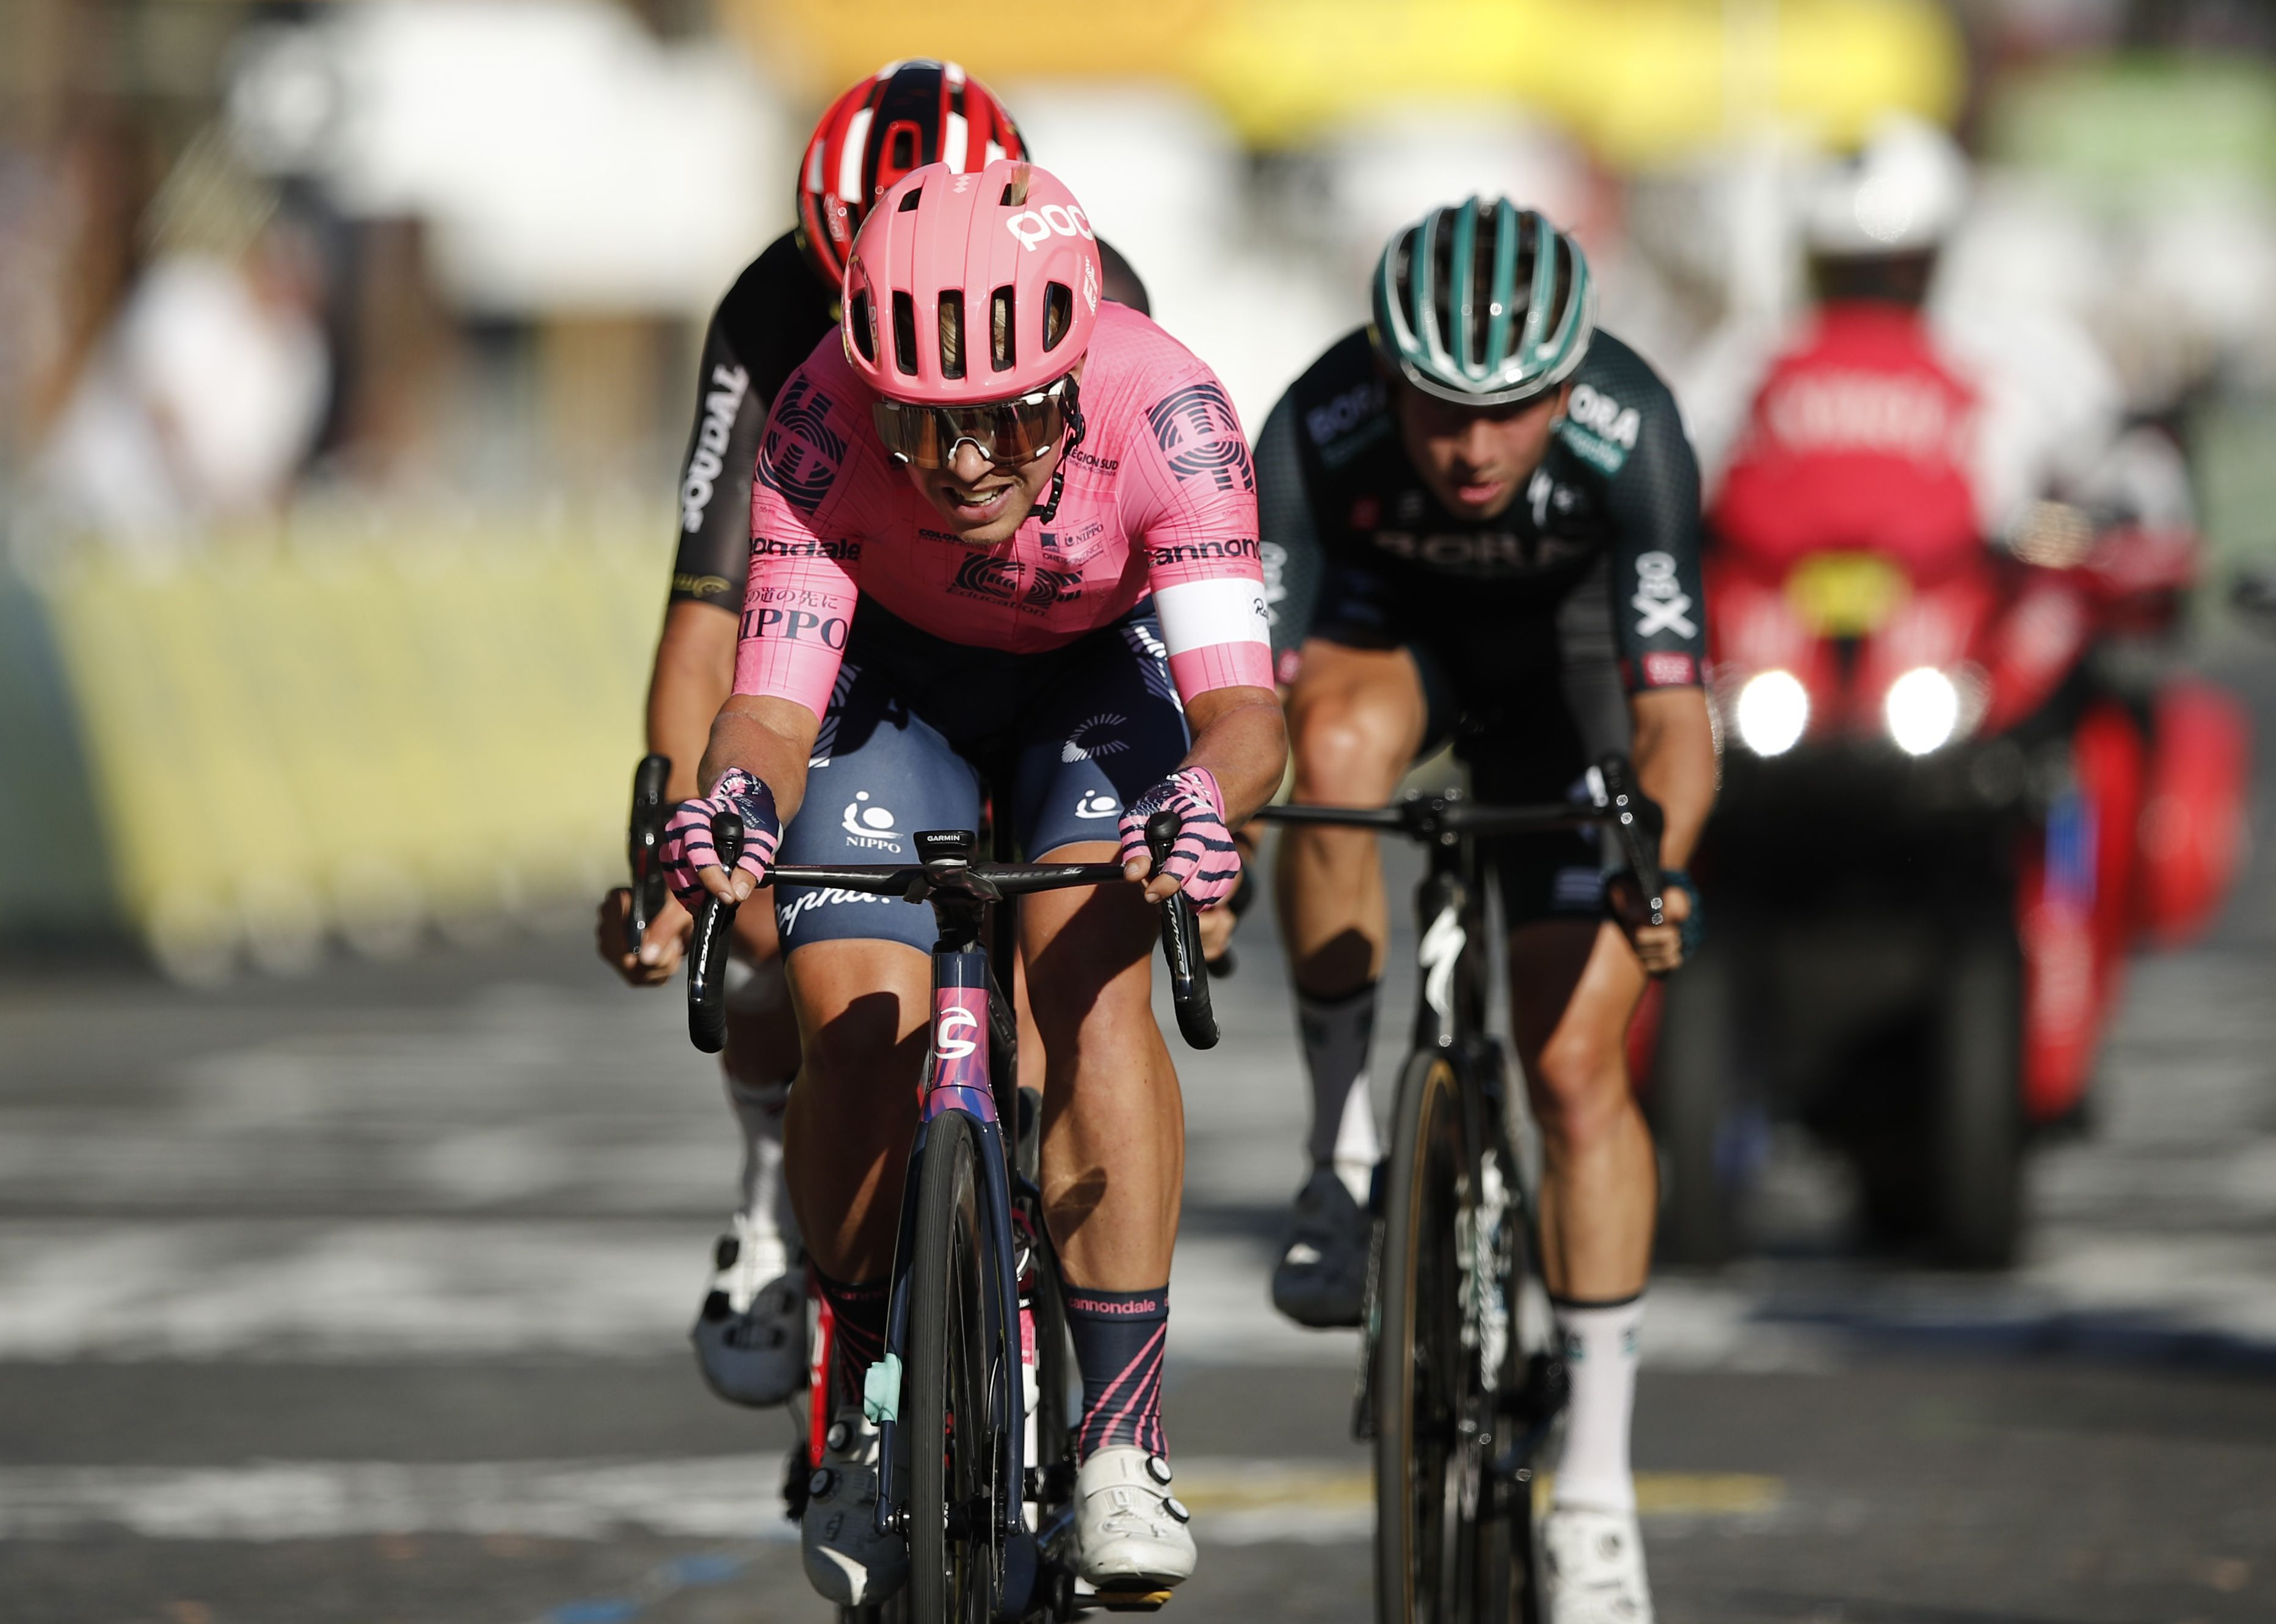 Cycling - Tour de France - Stage 21 - Chatou to Paris Champs-Elysees - France - July 18, 2021 EF Education–Nippo rider Sergio Higuita of Colombia in action during stage 21 REUTERS/Benoit Tessier